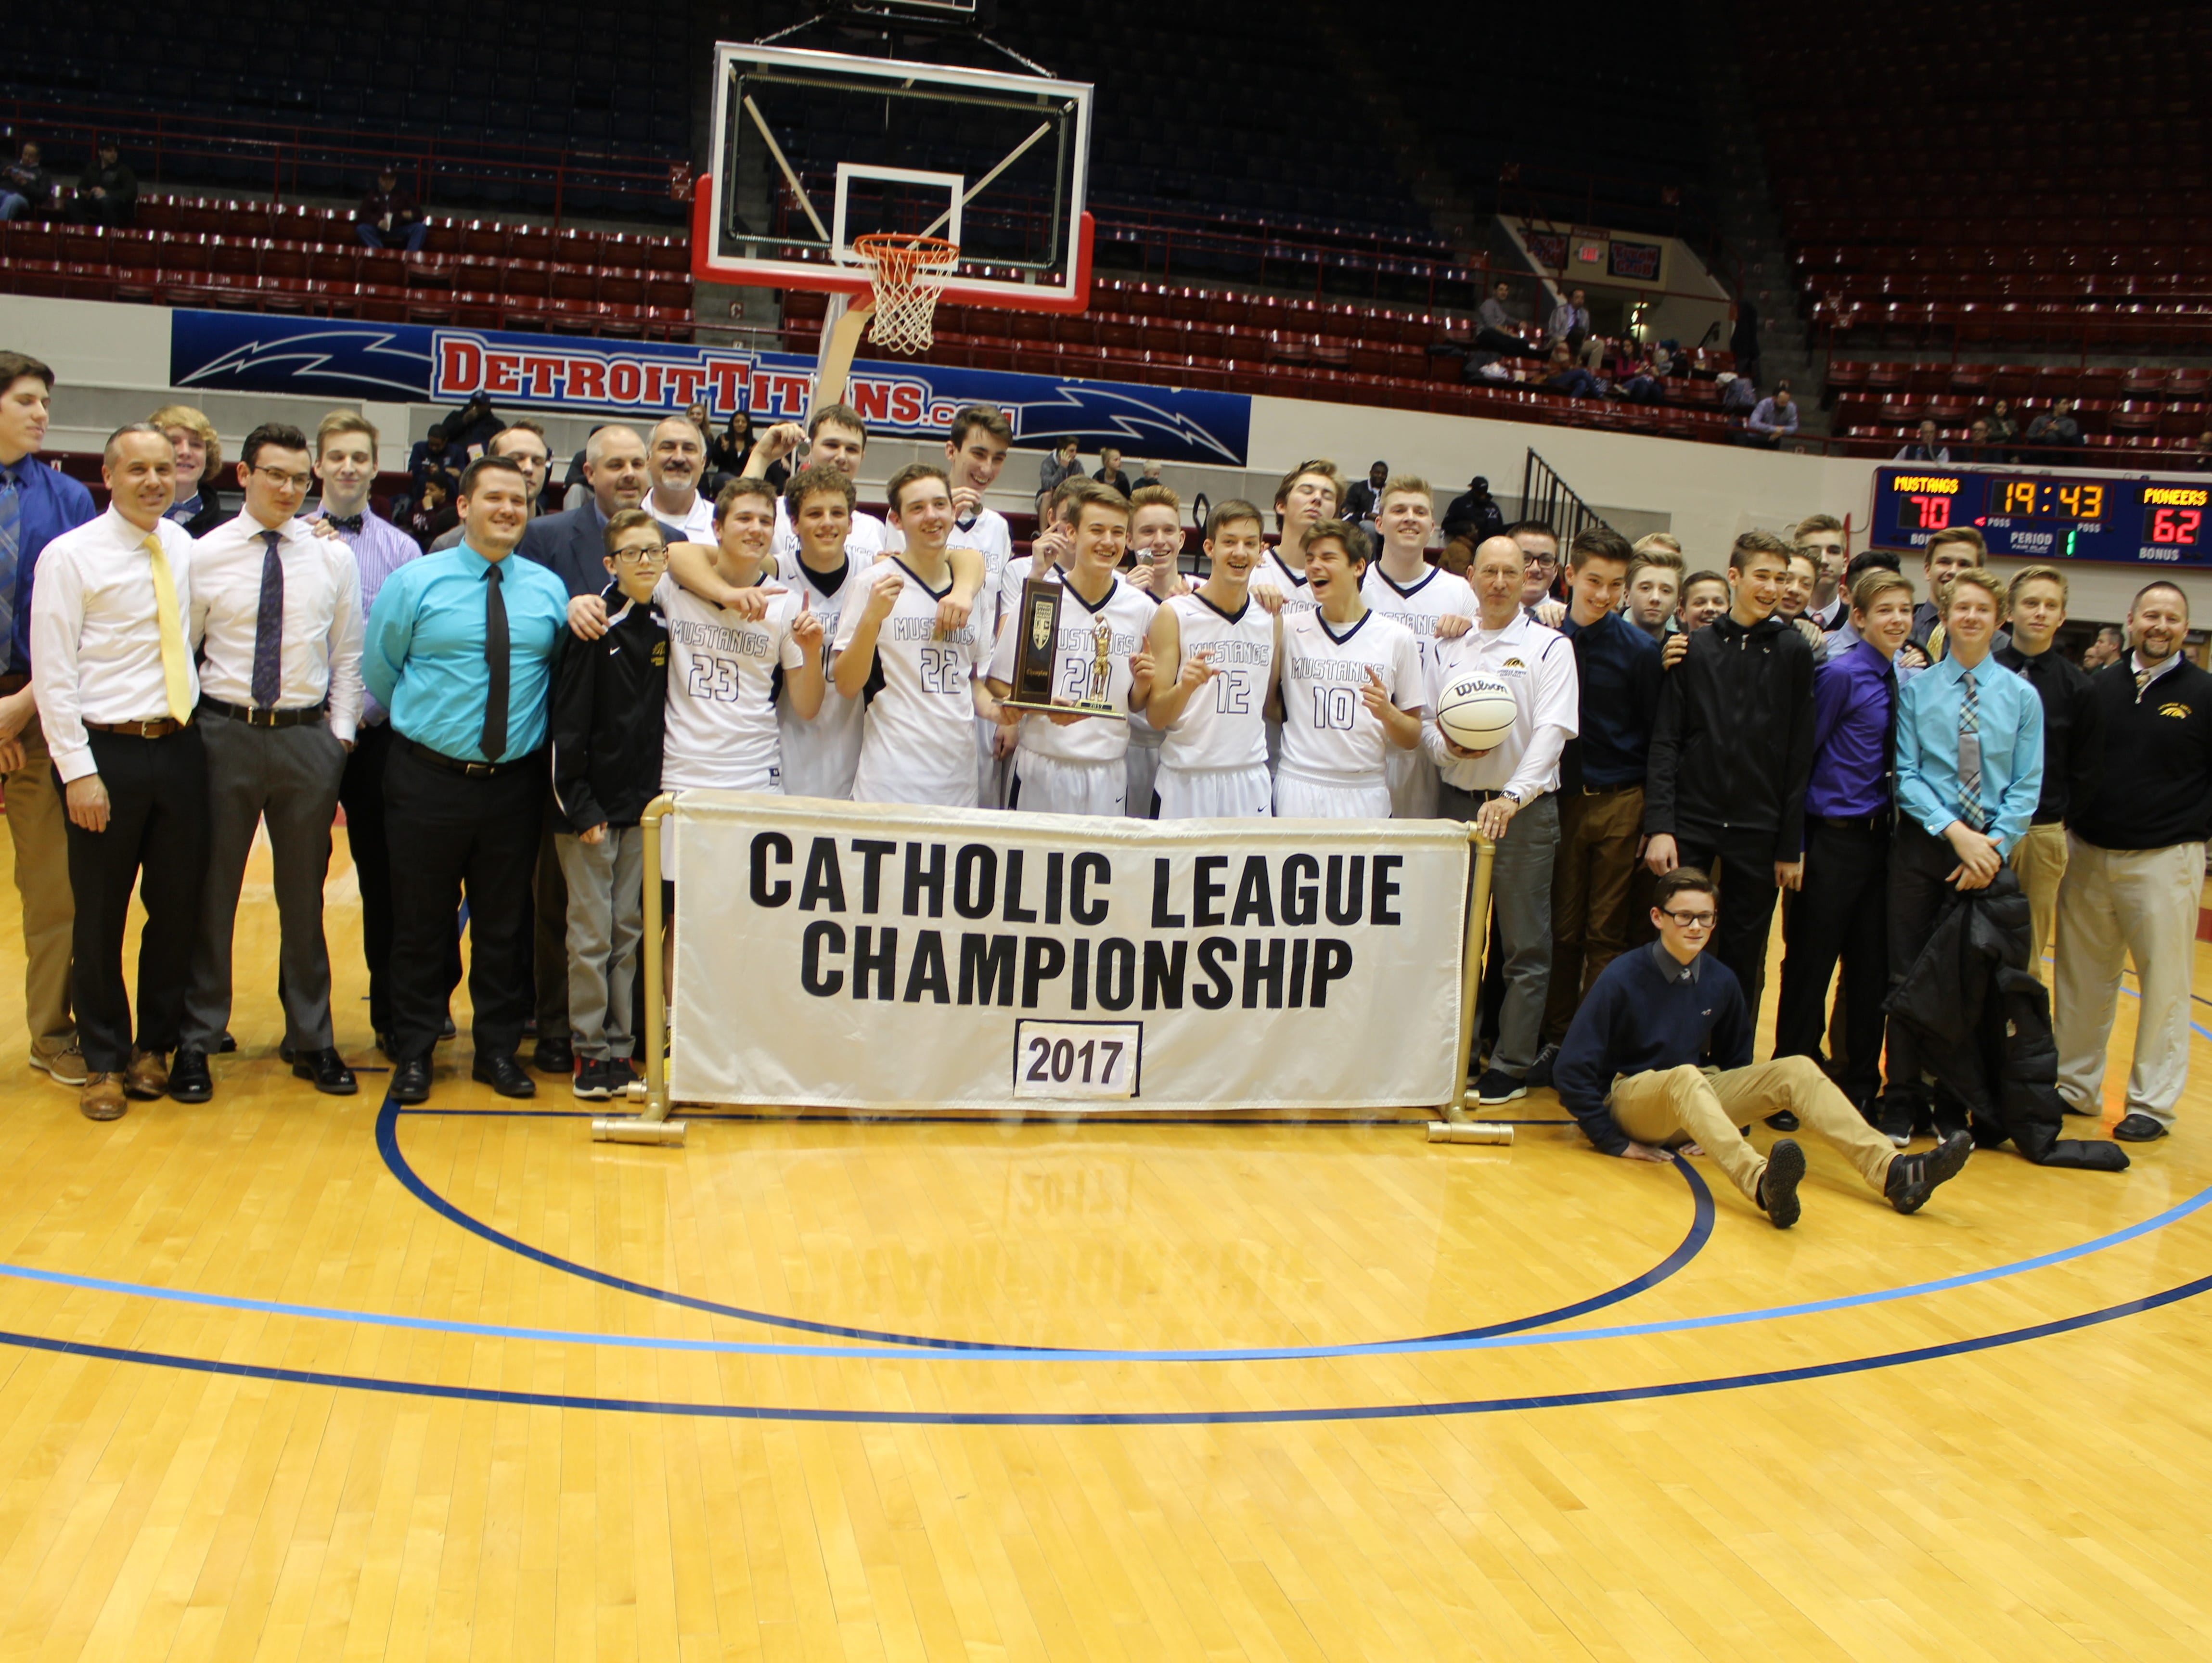 Macomb Lutheran North won Catholic League division titles at the varsity, JV and freshman levels this winter, so all three squads shared in the championship moment Sunday.